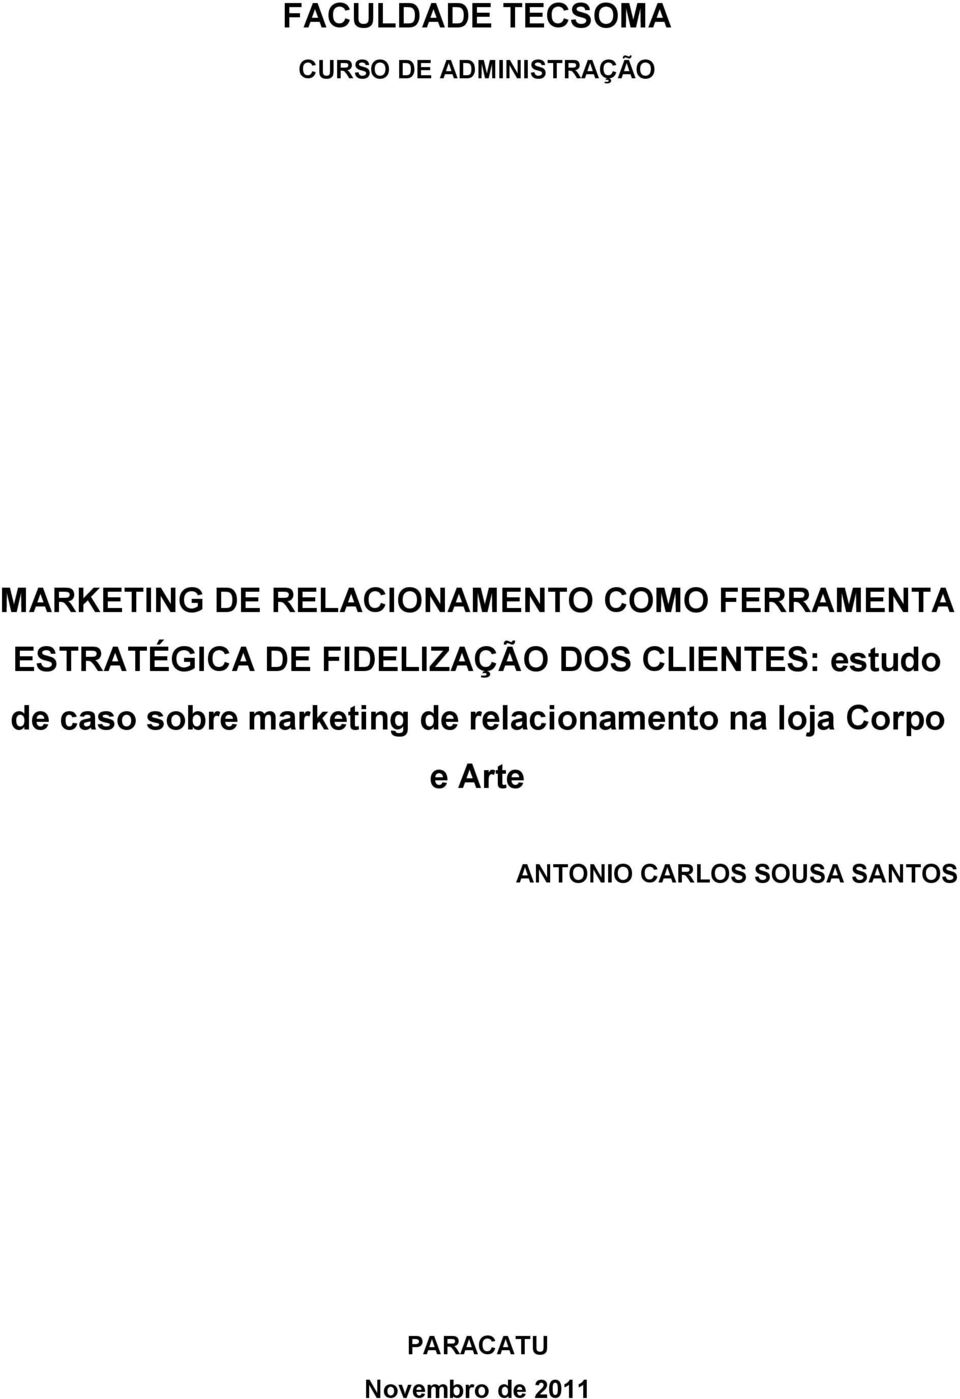 CLIENTES: estudo de caso sobre marketing de relacionamento na